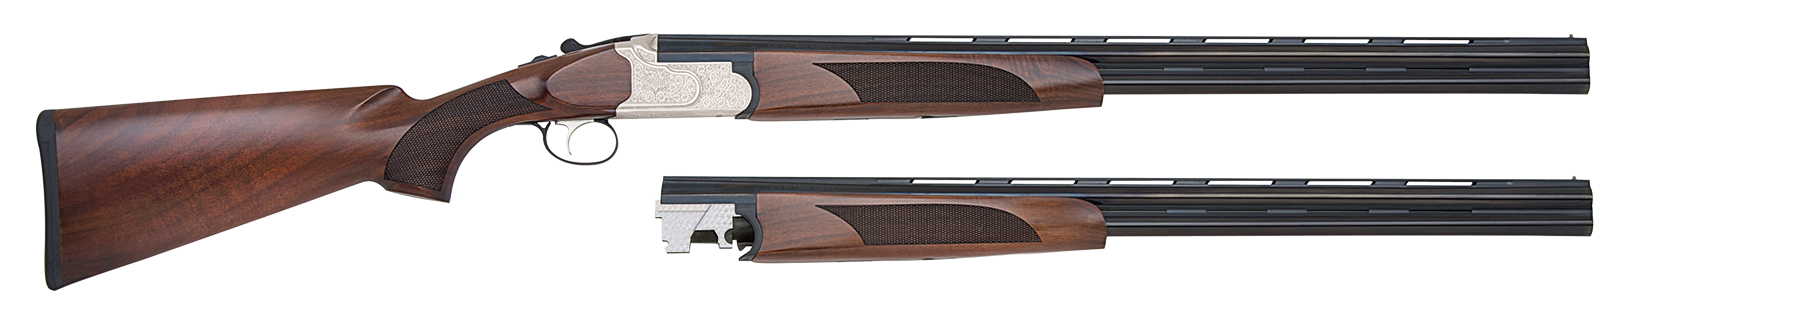 Mossberg 75441 Silver Reserve II Field Over/Under Over/Under N/A 20/28 Gauge Blued Barrel/Silver Receiver